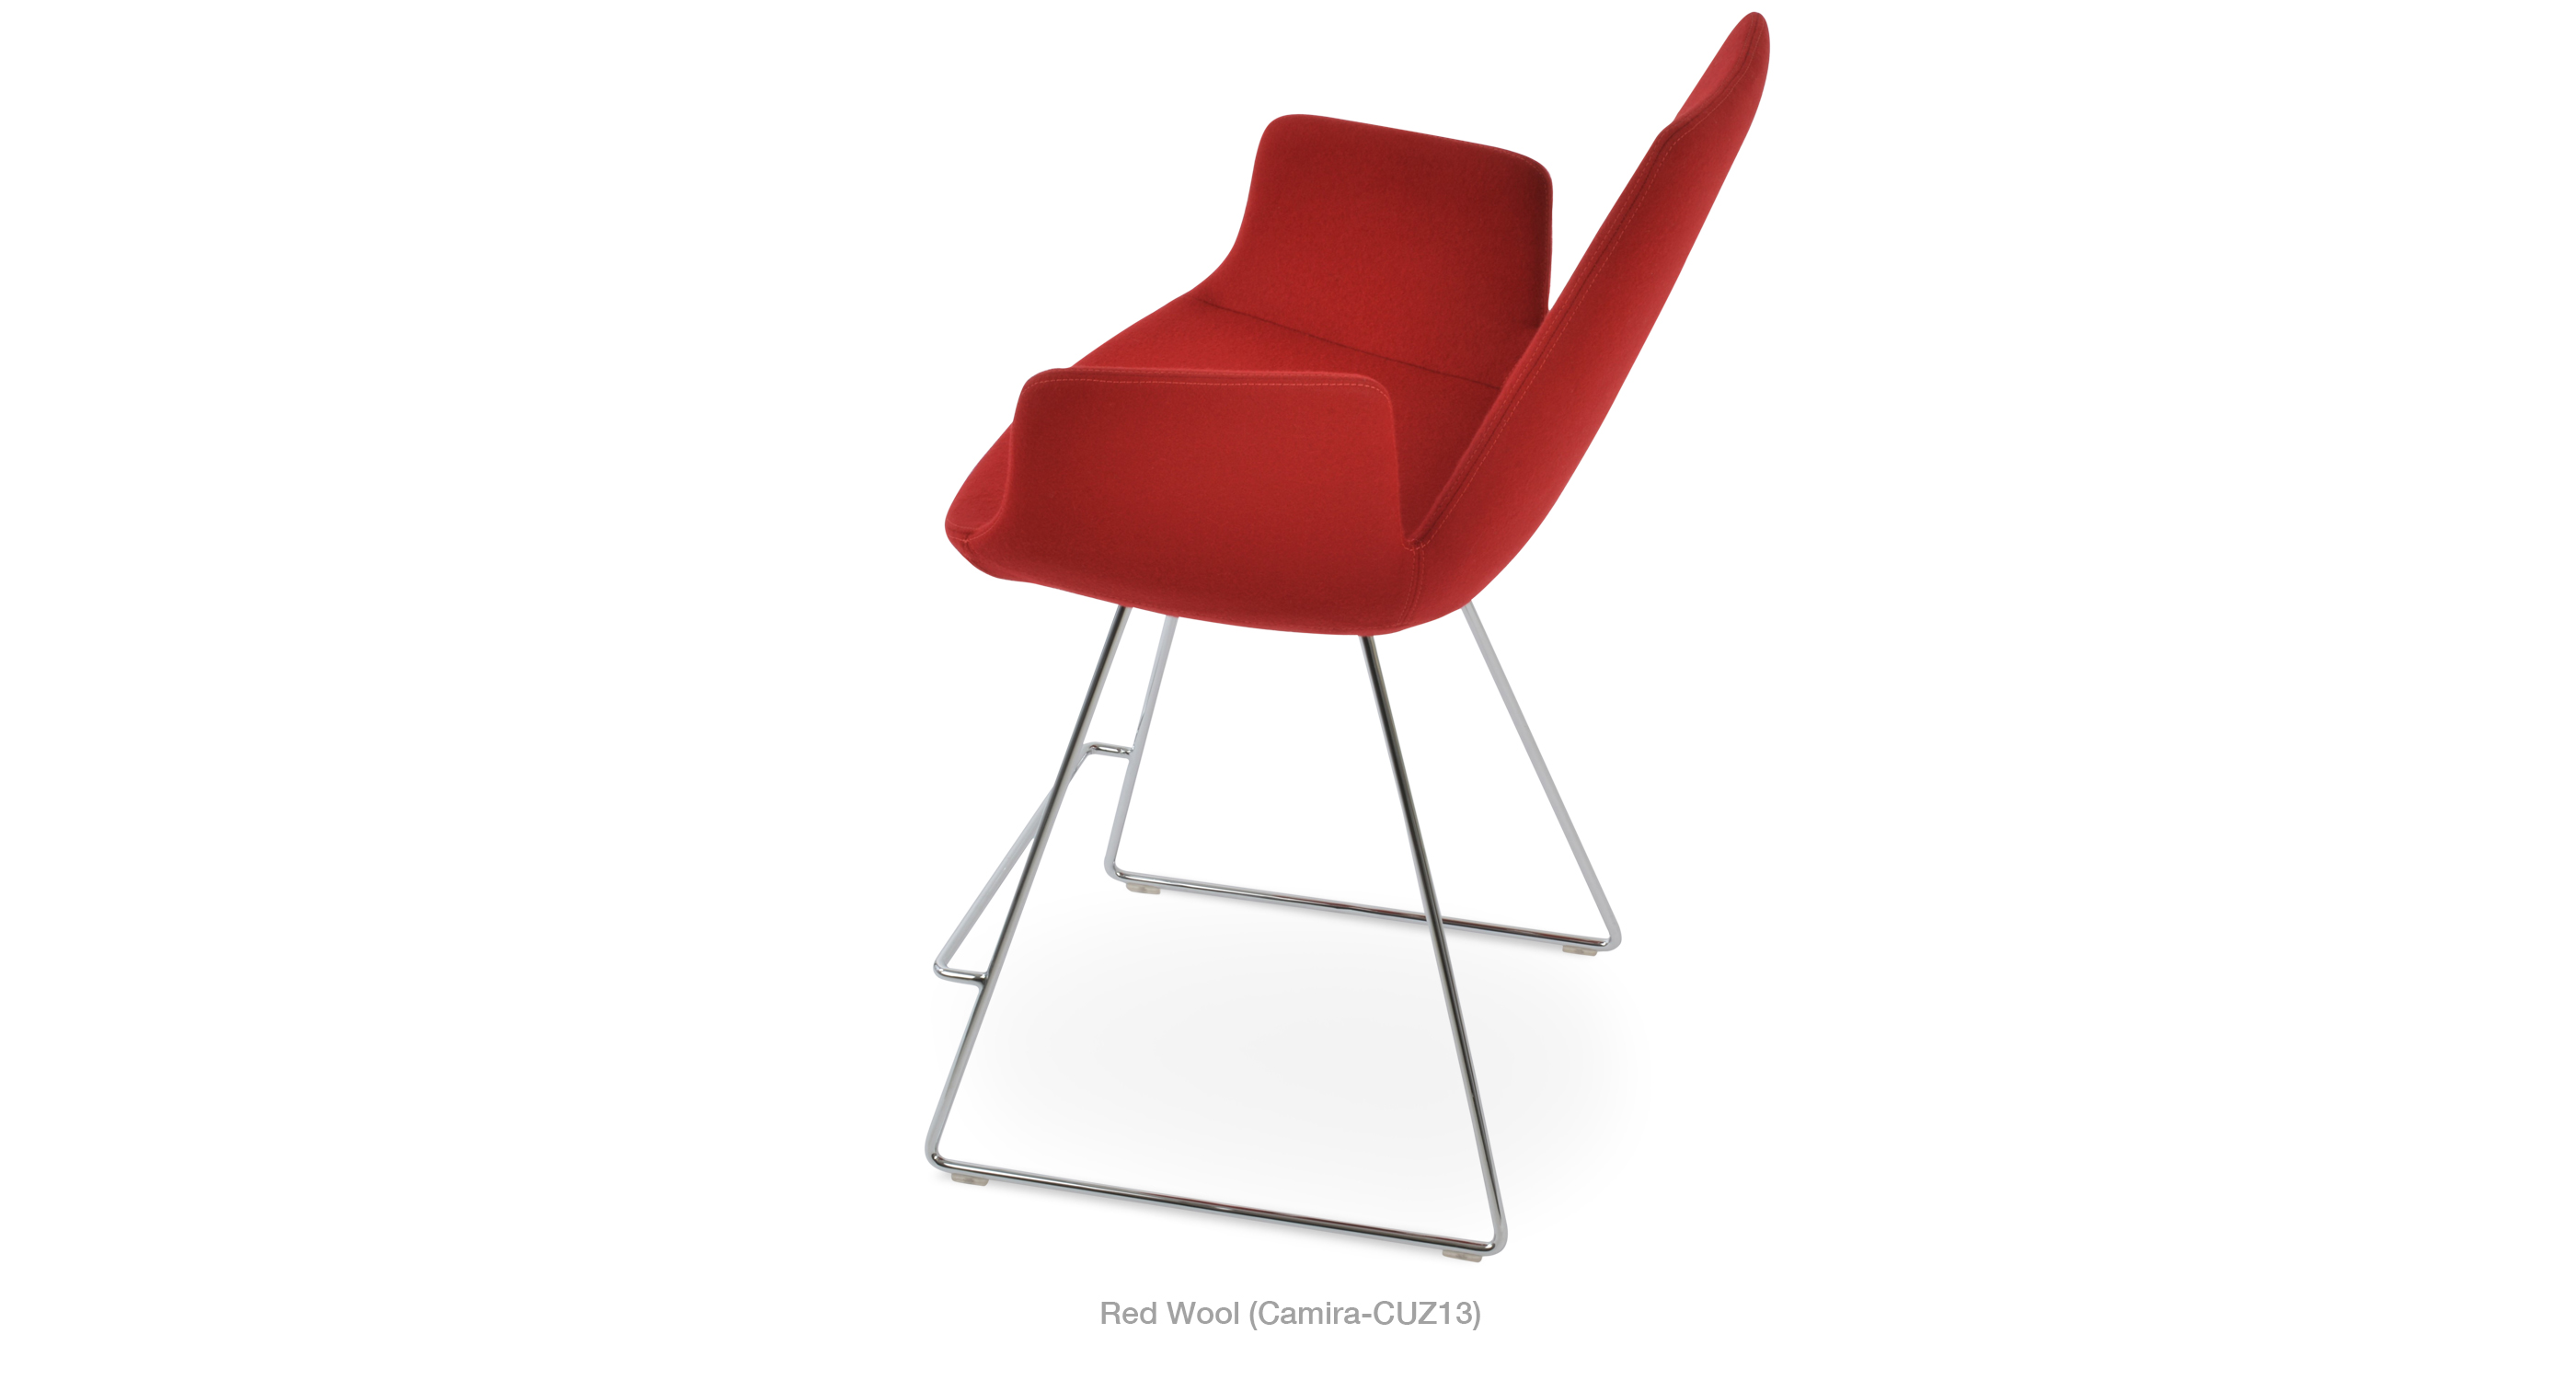 2020 03 05 Eiffel Arm Wire Stool Red Wool